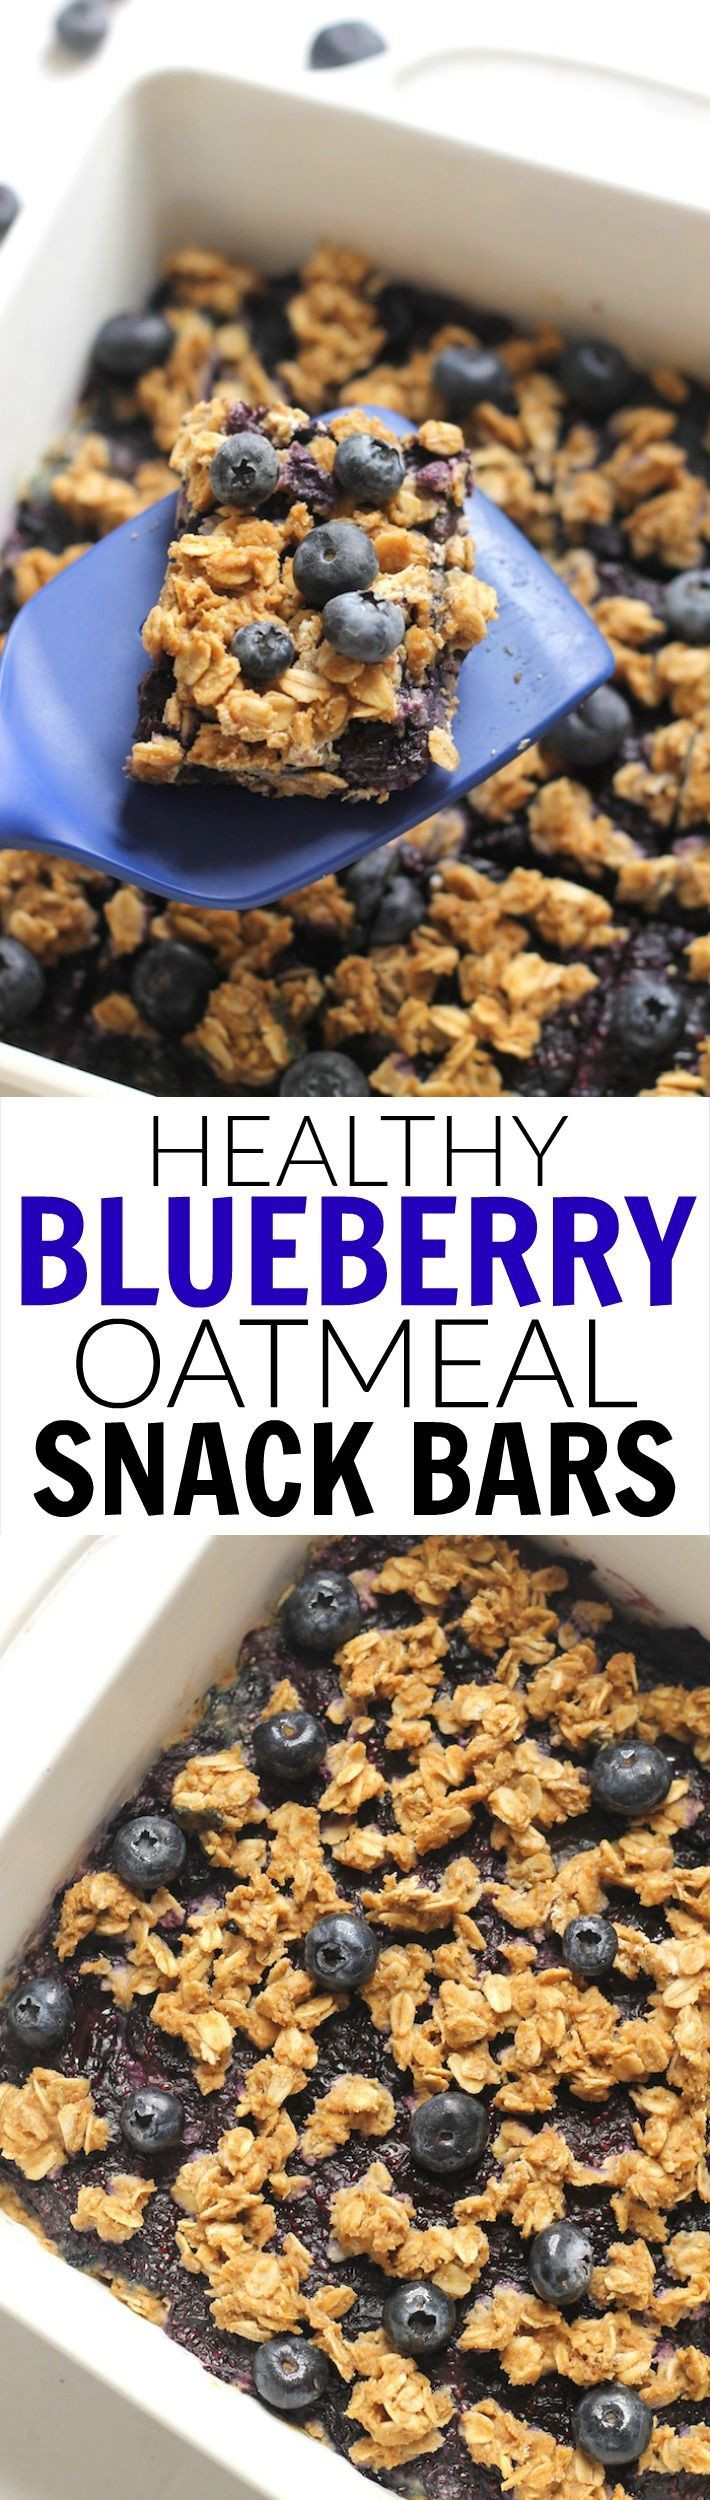 Healthy Oatmeal Snacks  Healthy Blueberry Oatmeal Snack Bars made with no flour